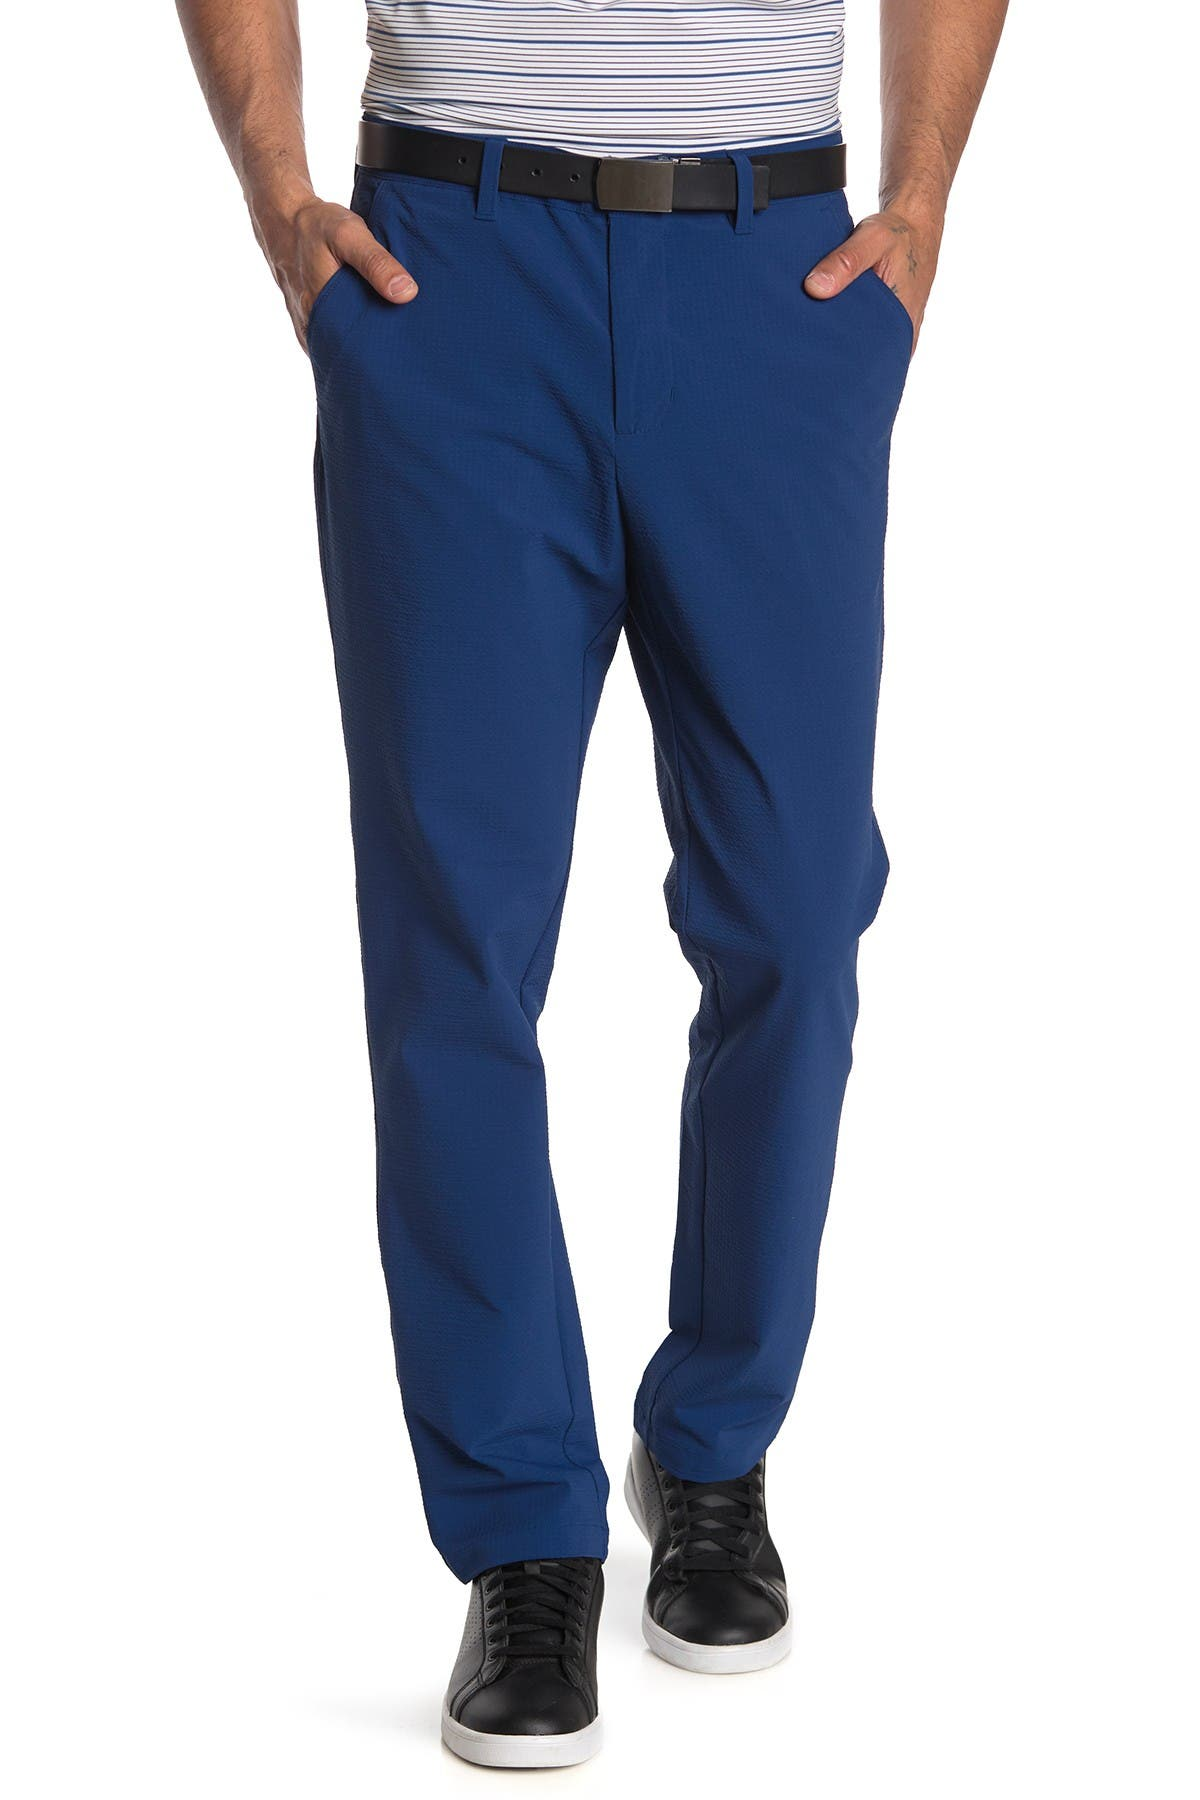 Image of adidas Ultimate 365 Classic Golf Pants